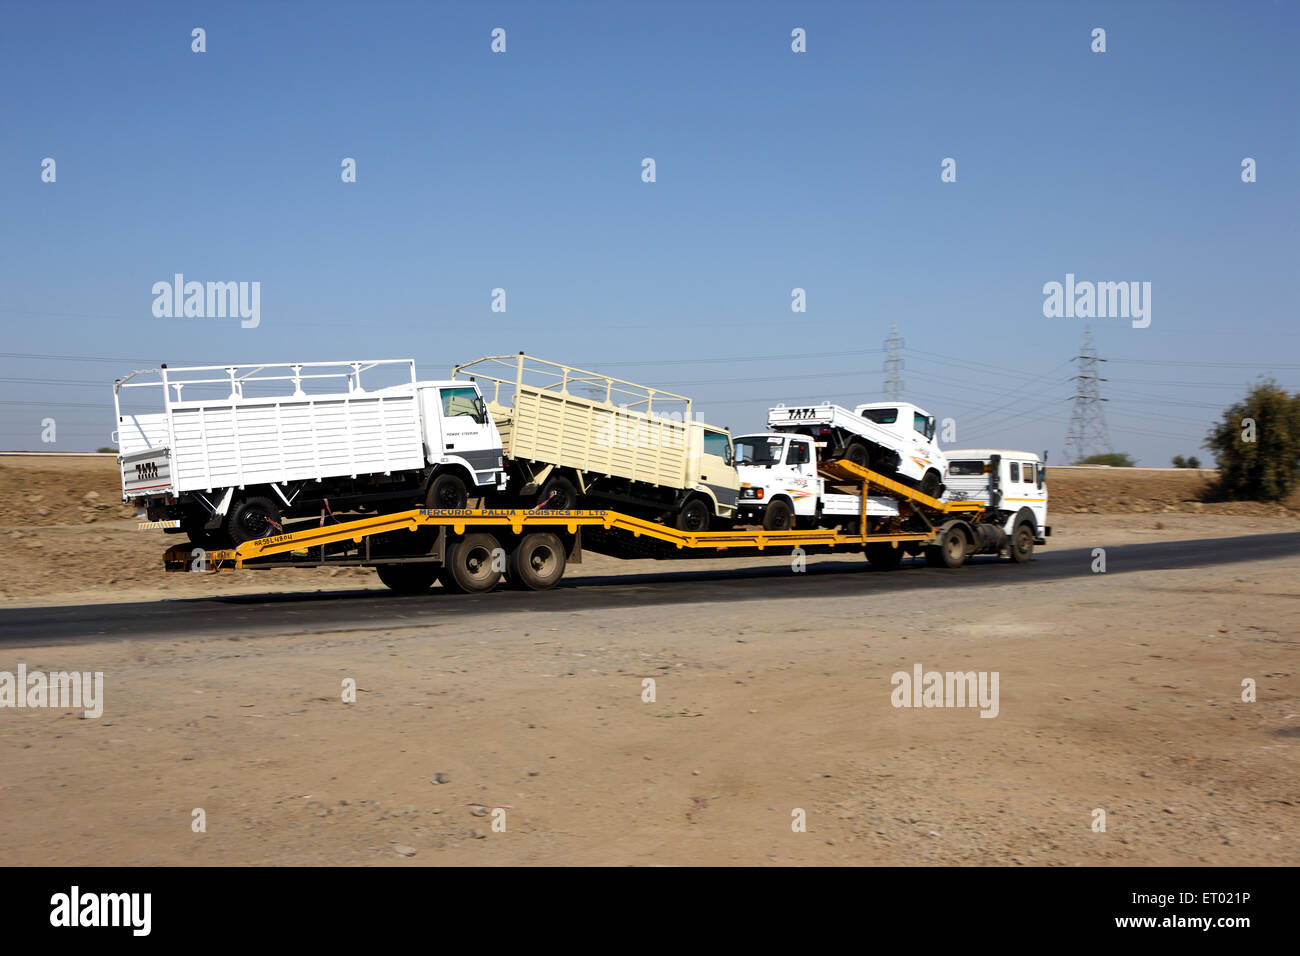 Transporting of  automobiles  by road carriers  on state highway - Stock Image